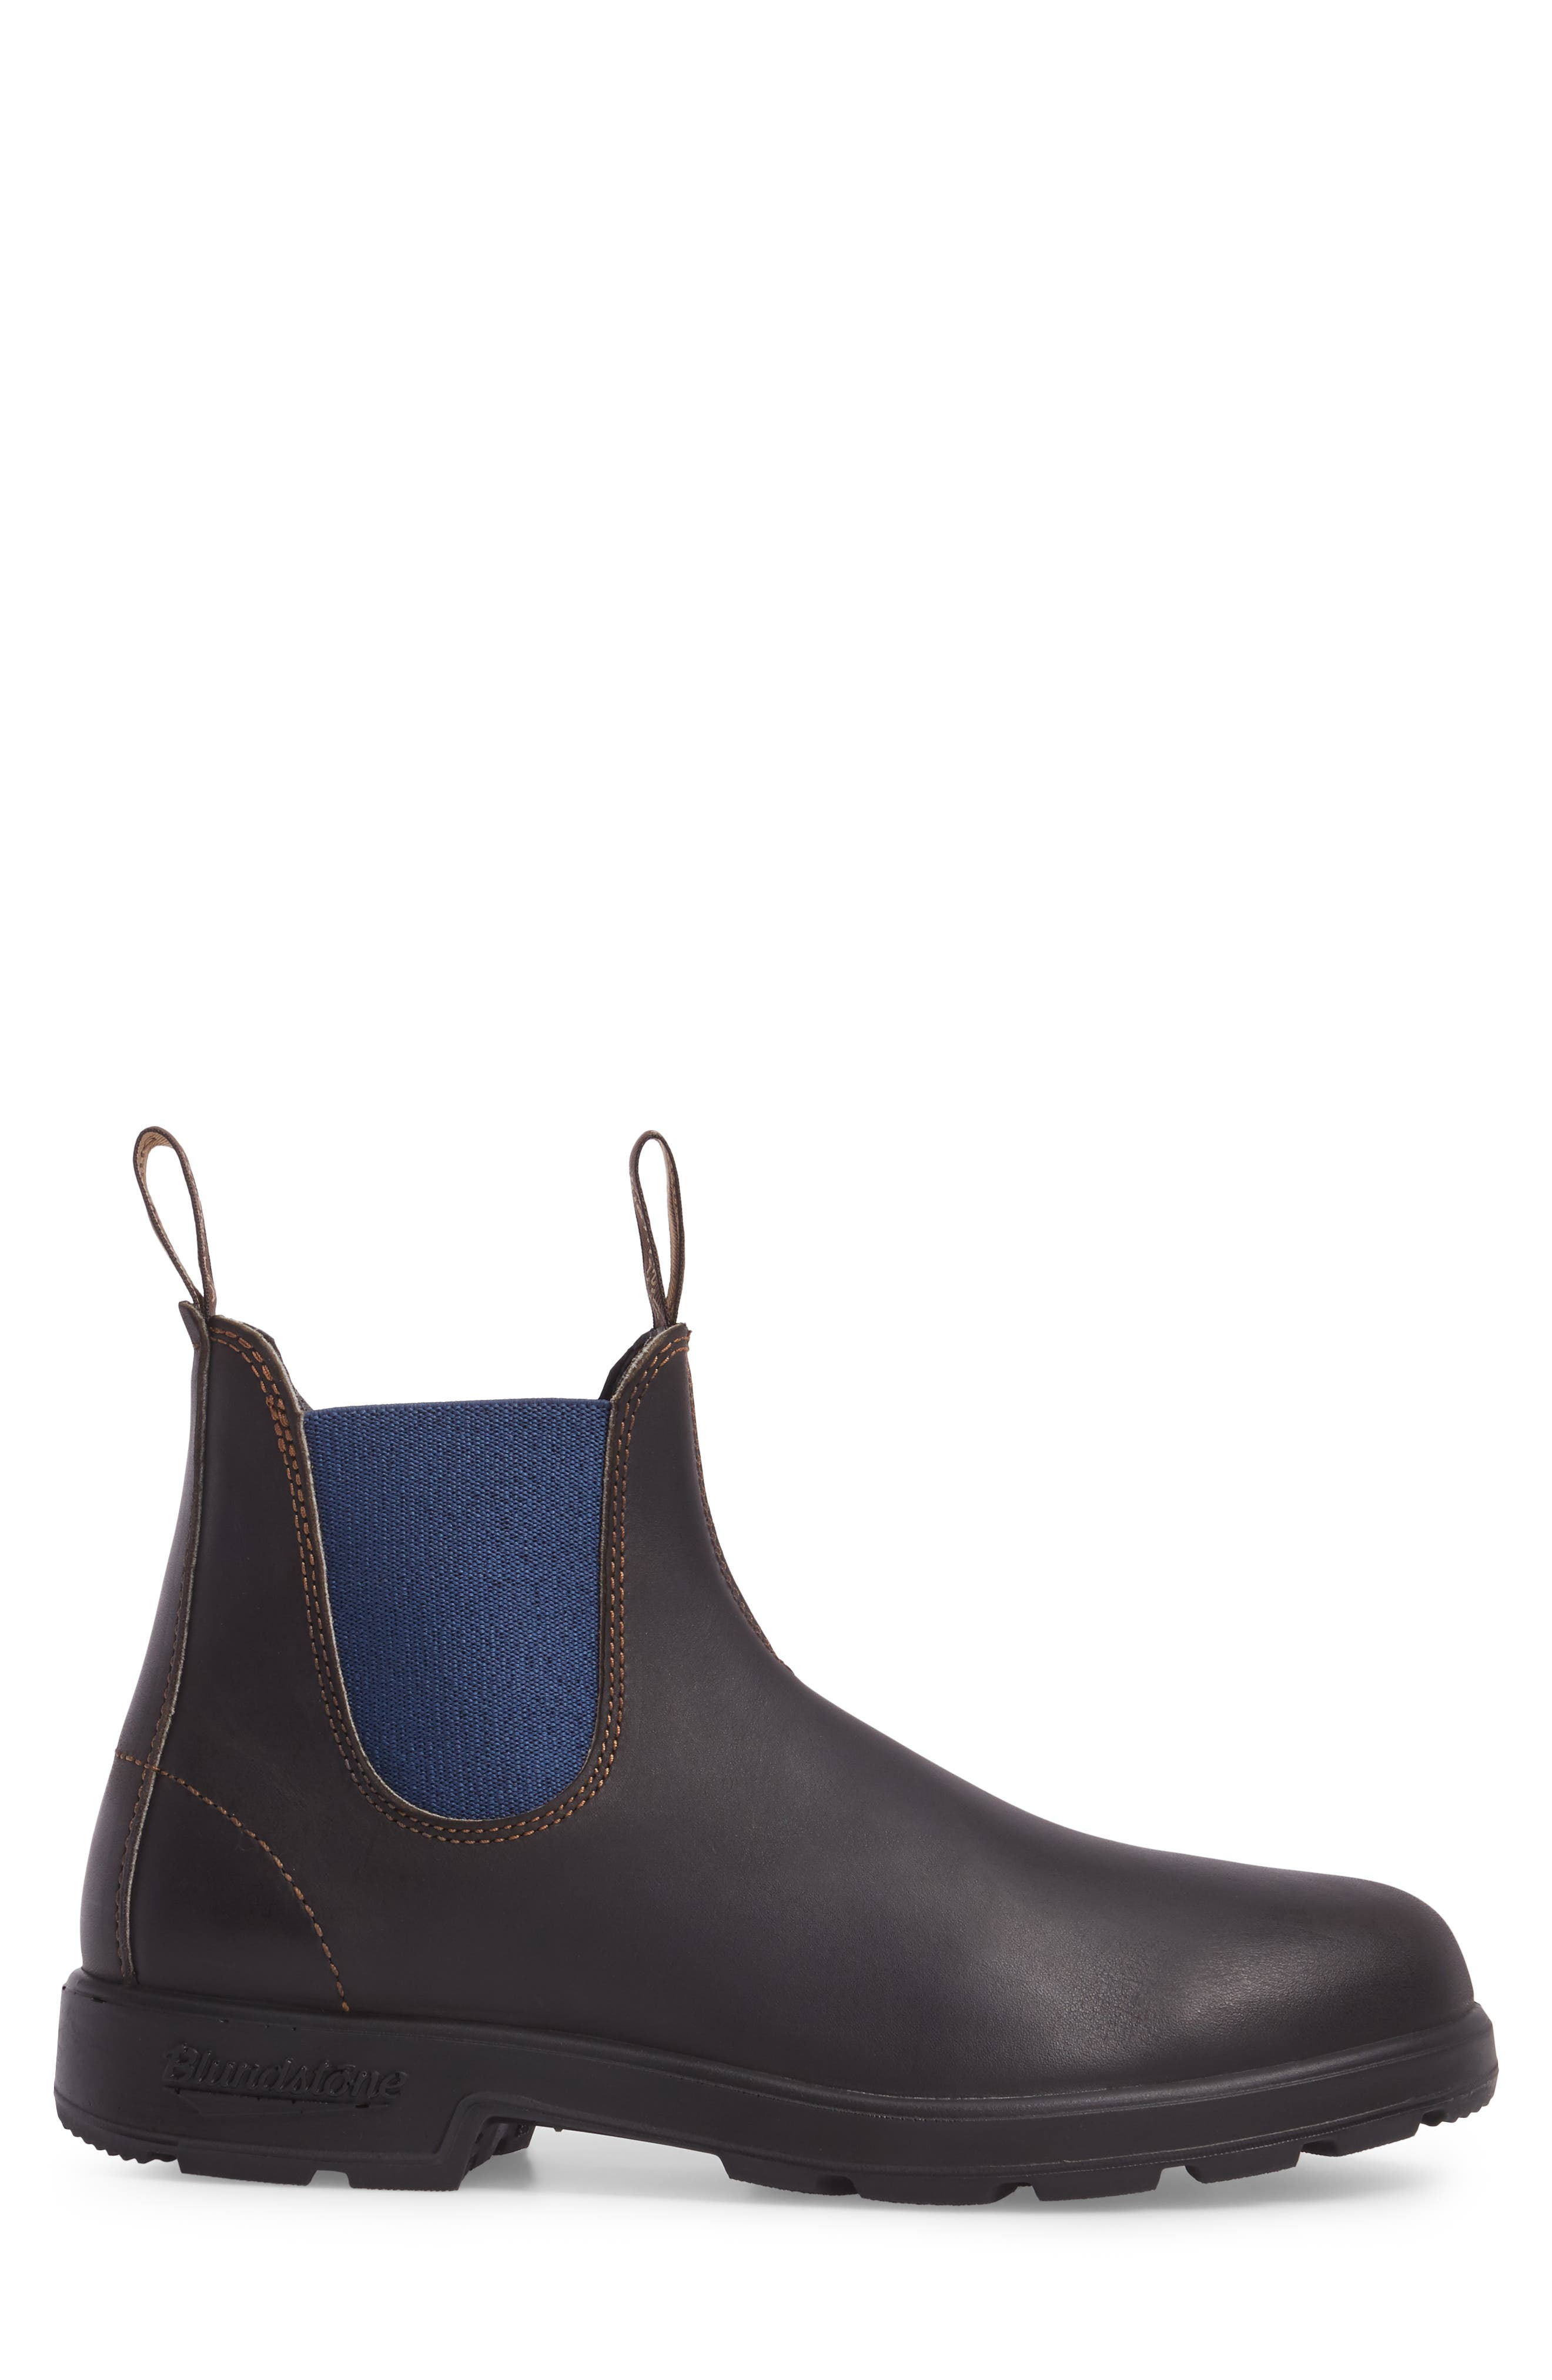 Chelsea Boot,                             Alternate thumbnail 3, color,                             BROWN/ BLUE LEATHER